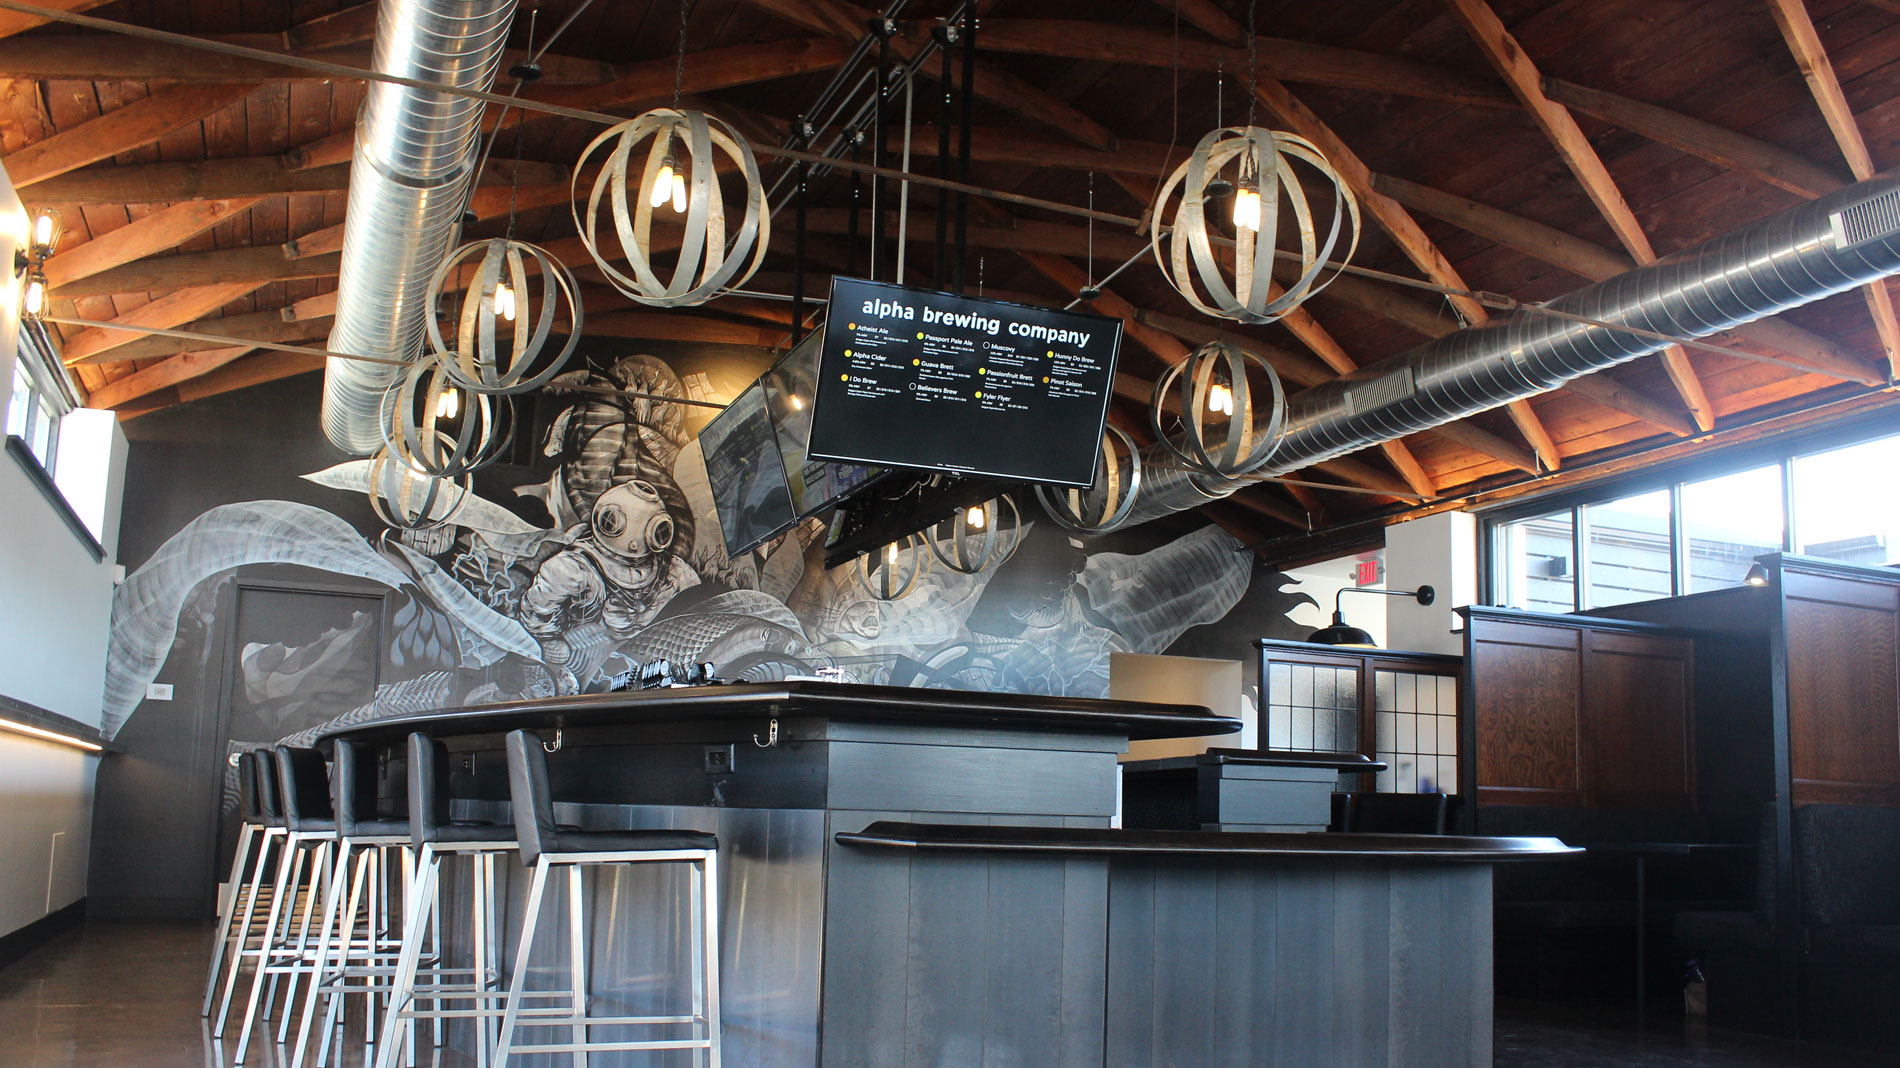 alpha brewing co. interior